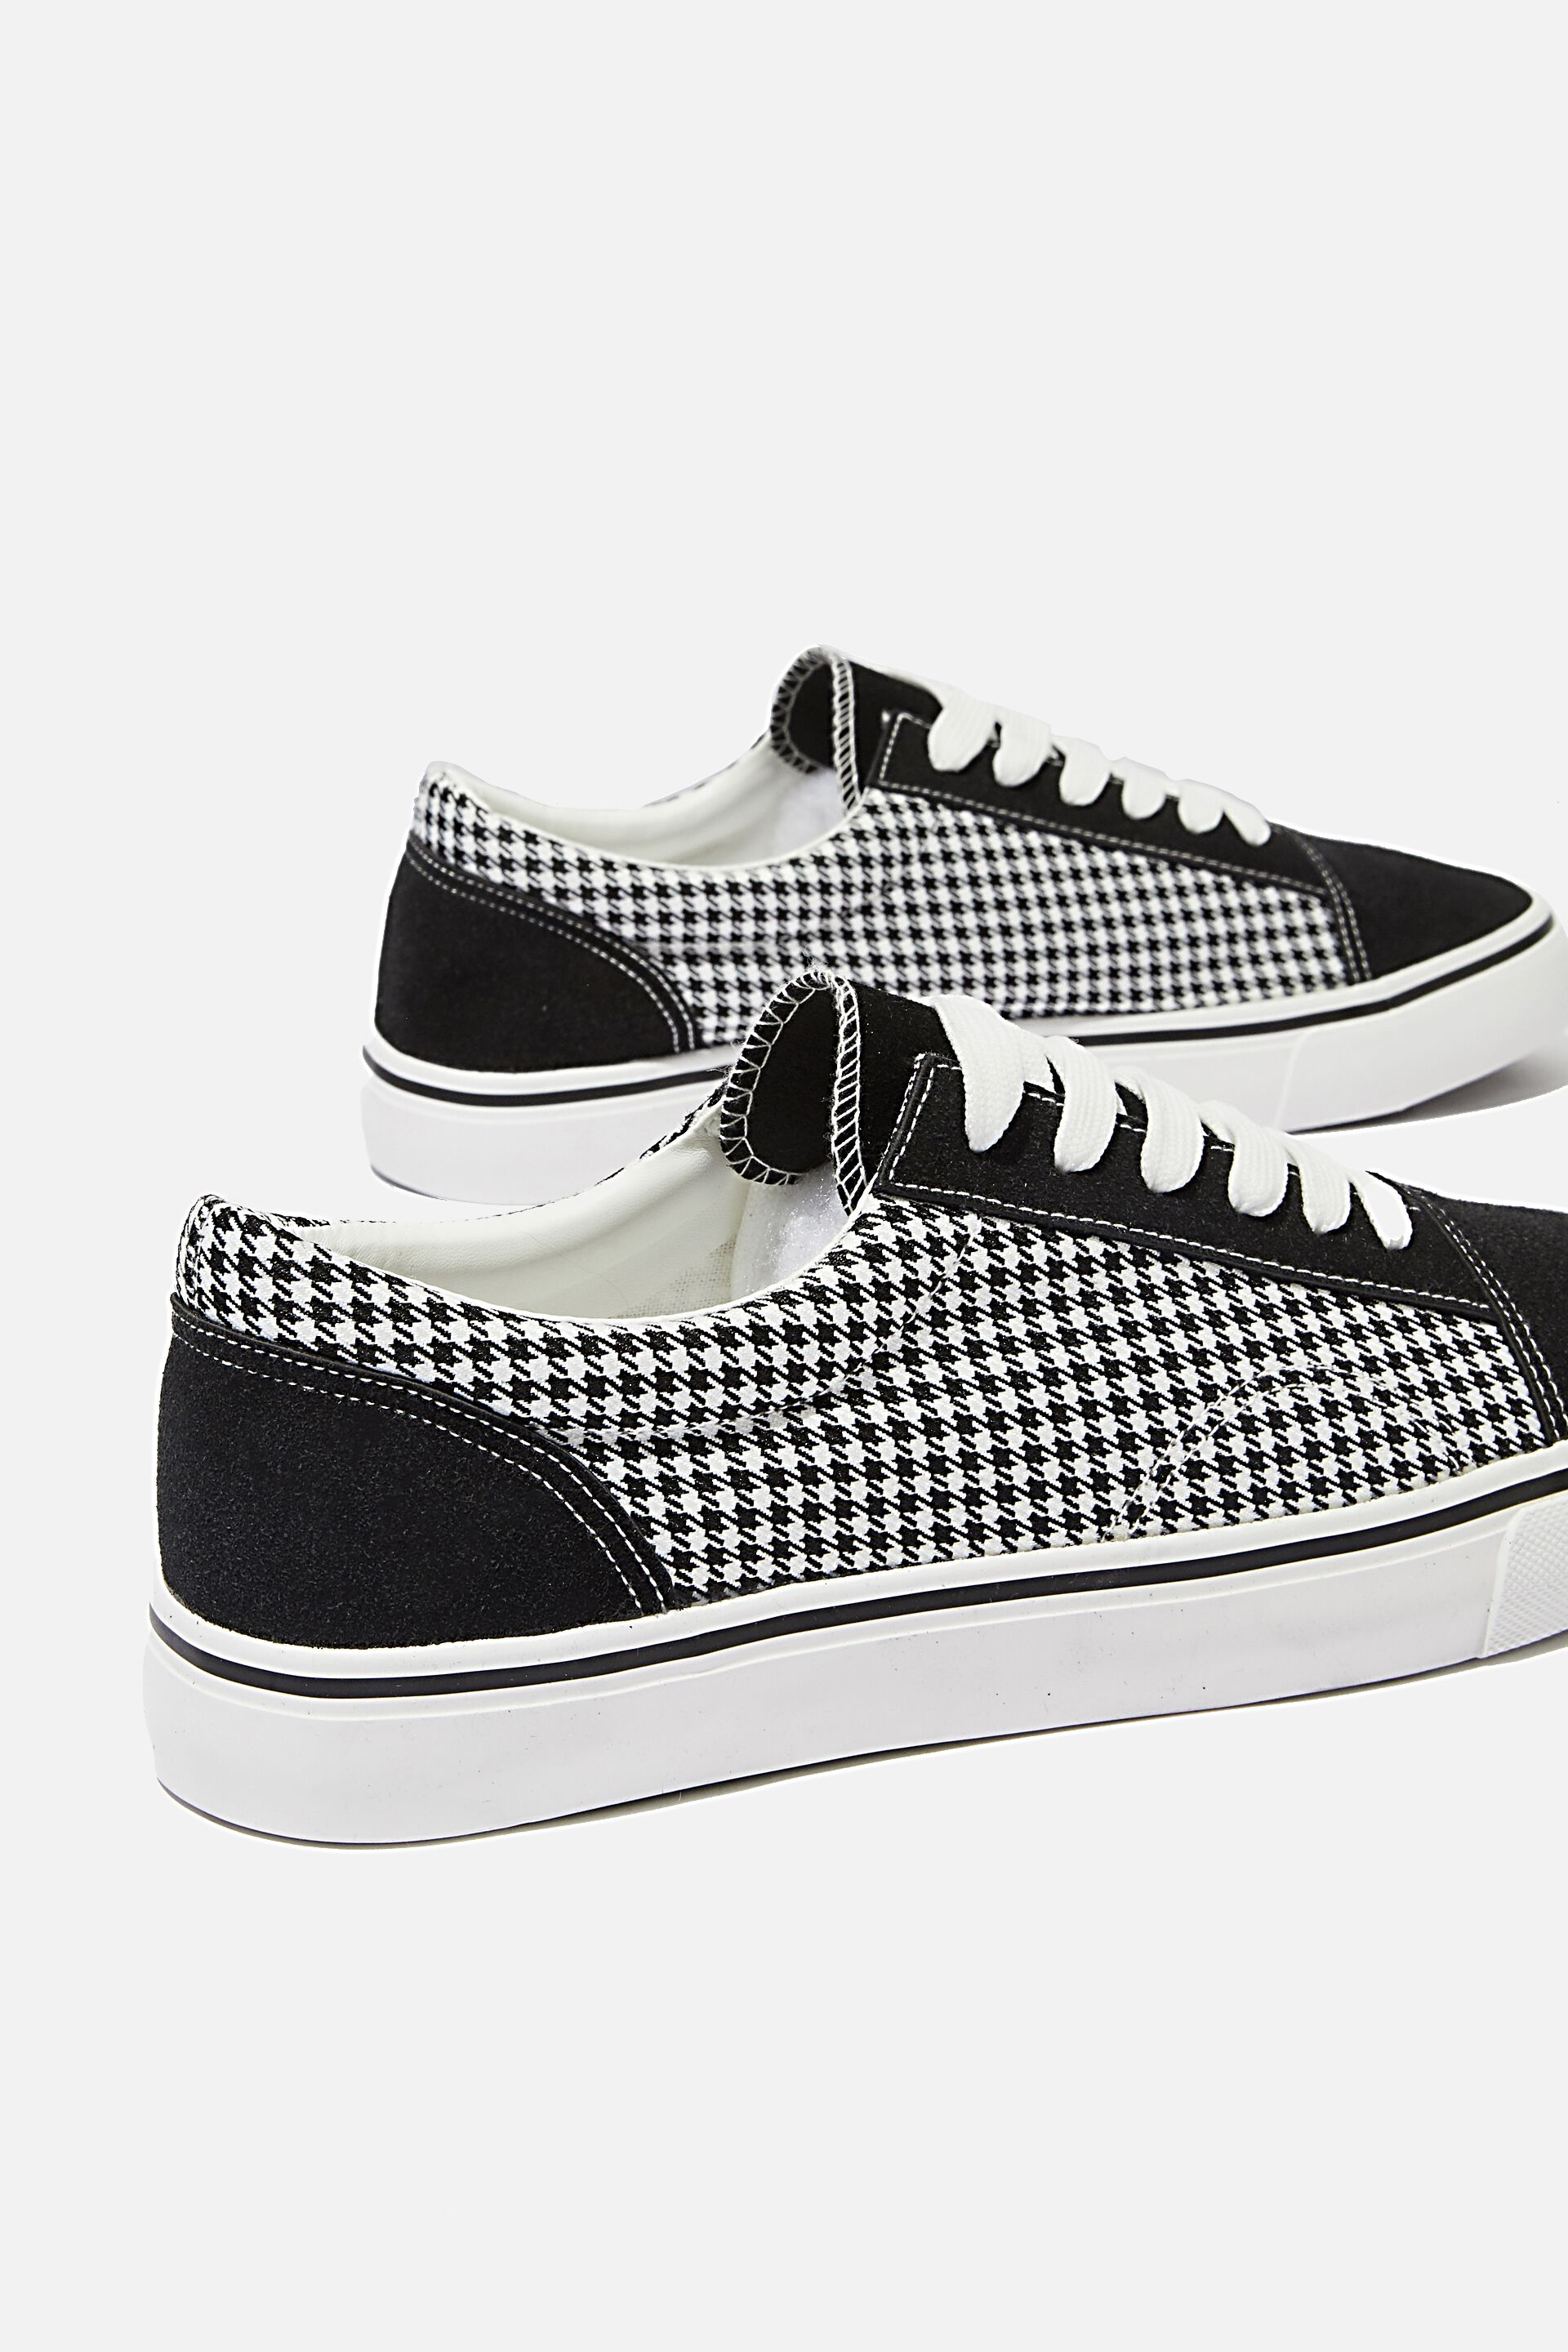 Axell Skate Shoe | Men's Accessories